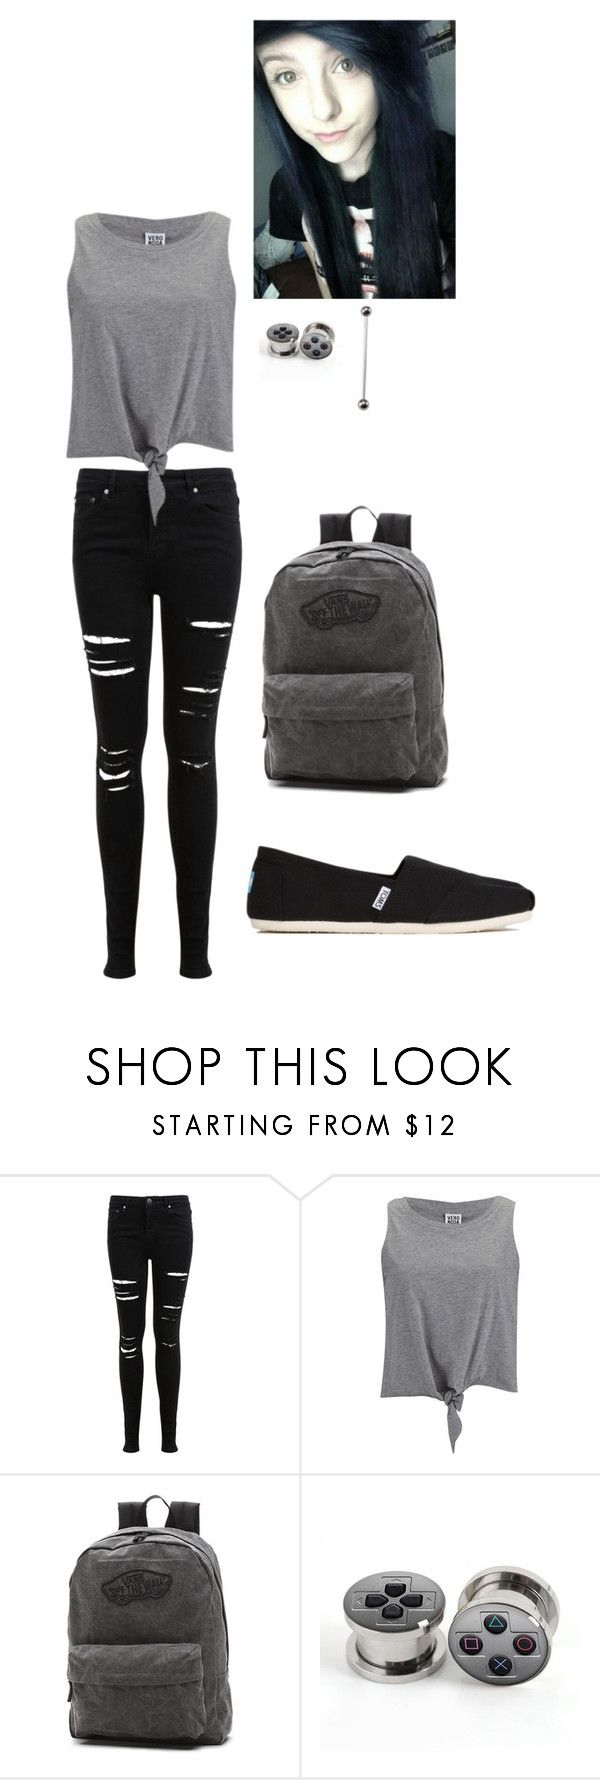 """Untitled #223"" by lelegreenwell ❤ liked on Polyvore featuring Miss Selfridge, Vero Moda, Vans and TOMS"